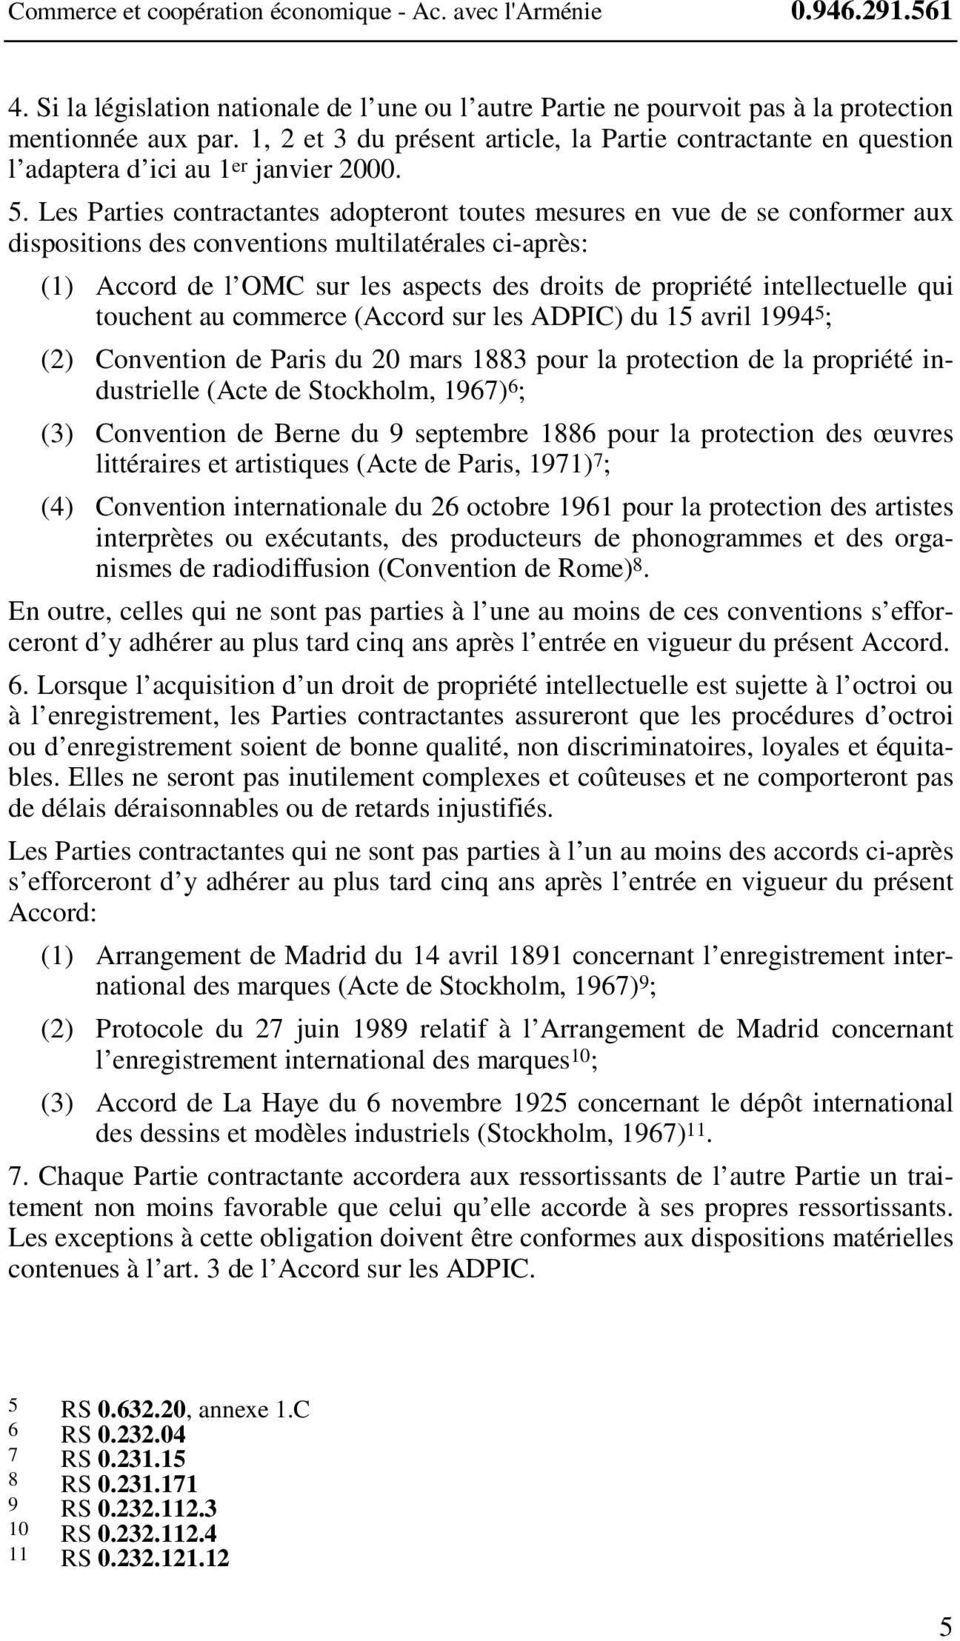 Les Parties contractantes adopteront toutes mesures en vue de se conformer aux dispositions des conventions multilatérales ci-après: (1) Accord de l OMC sur les aspects des droits de propriété